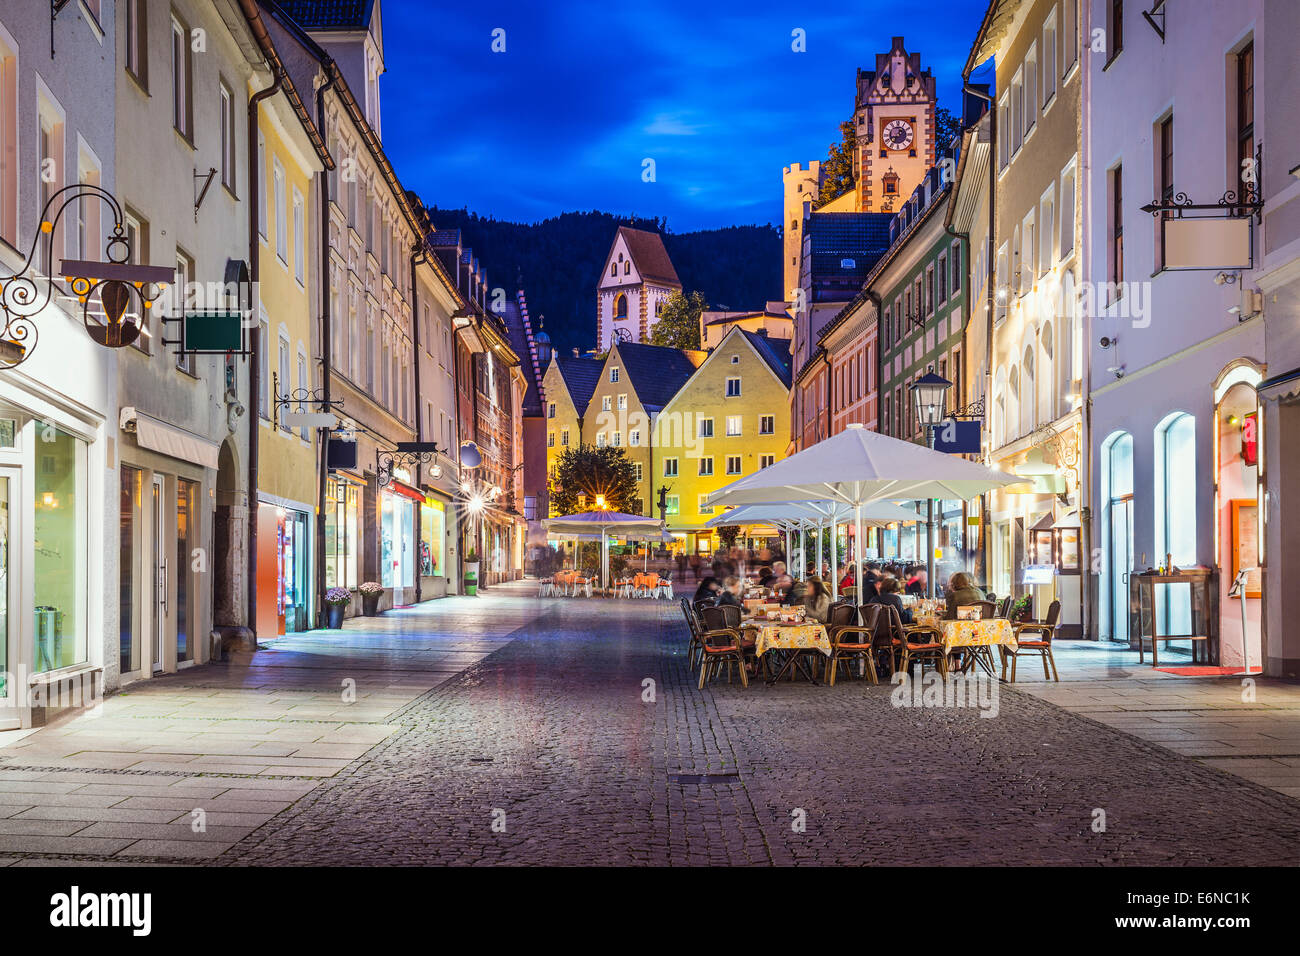 Fussen, Germany old townscape at night. - Stock Image